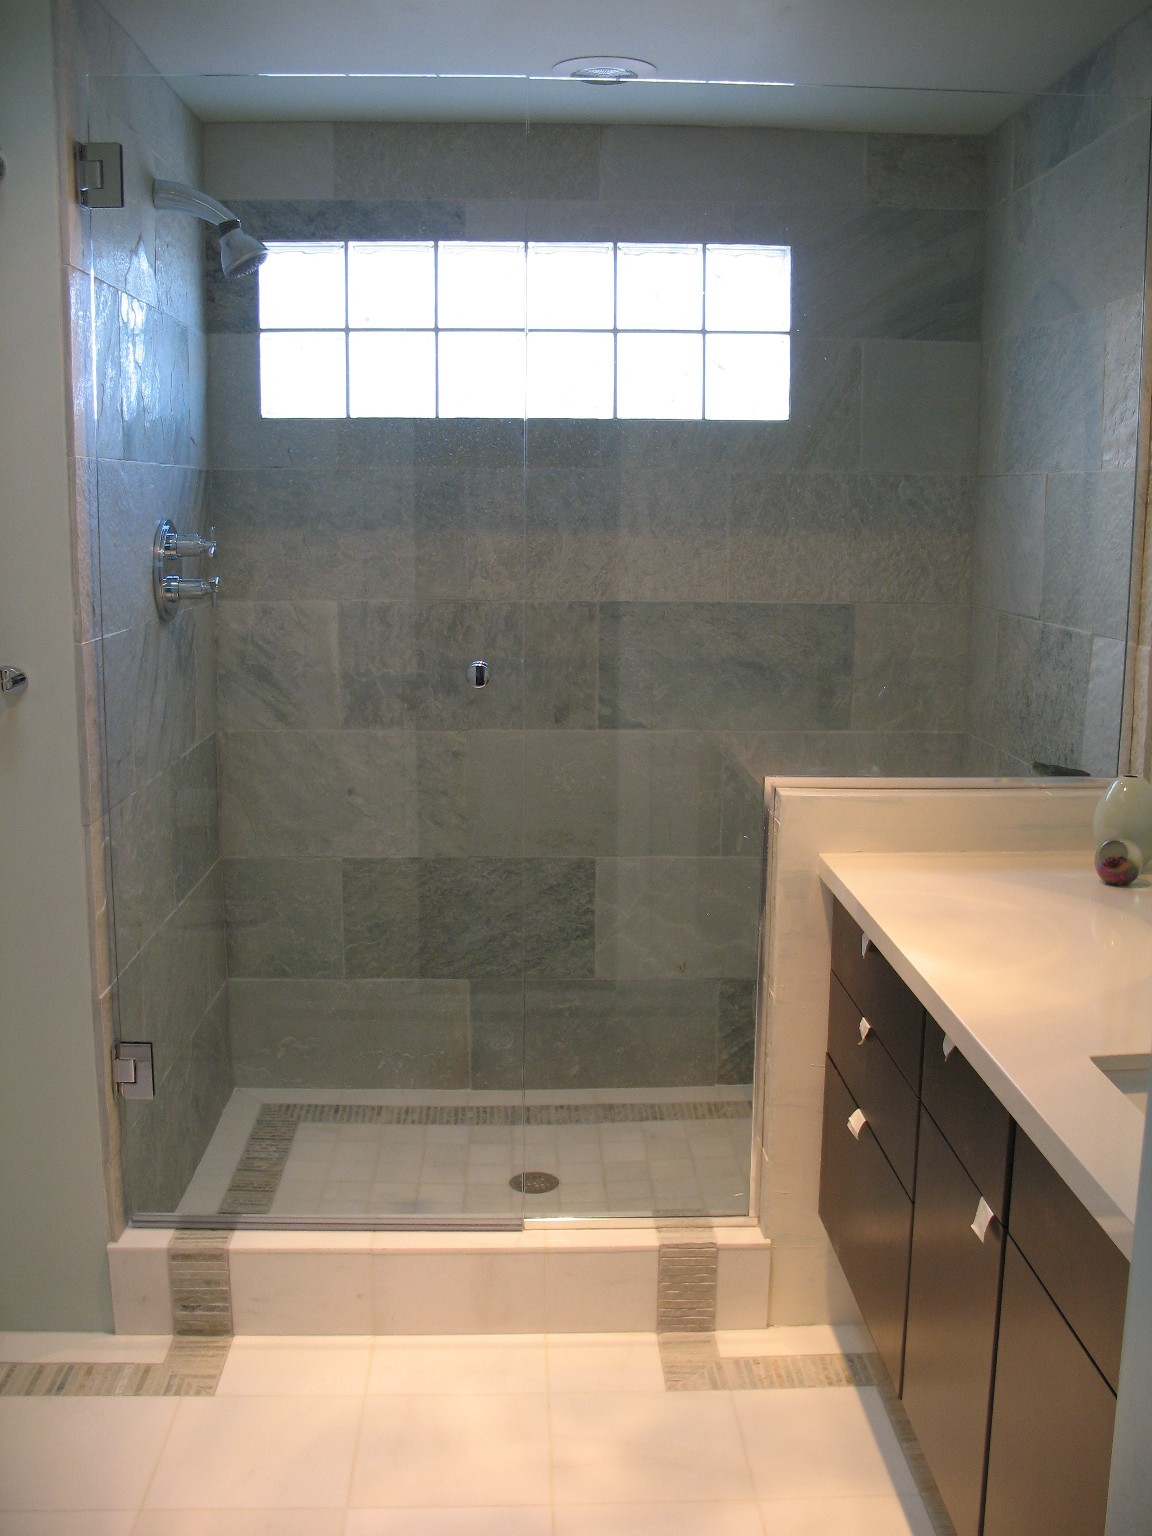 30 shower tile ideas on a budget - Bathroom shower ideas ...